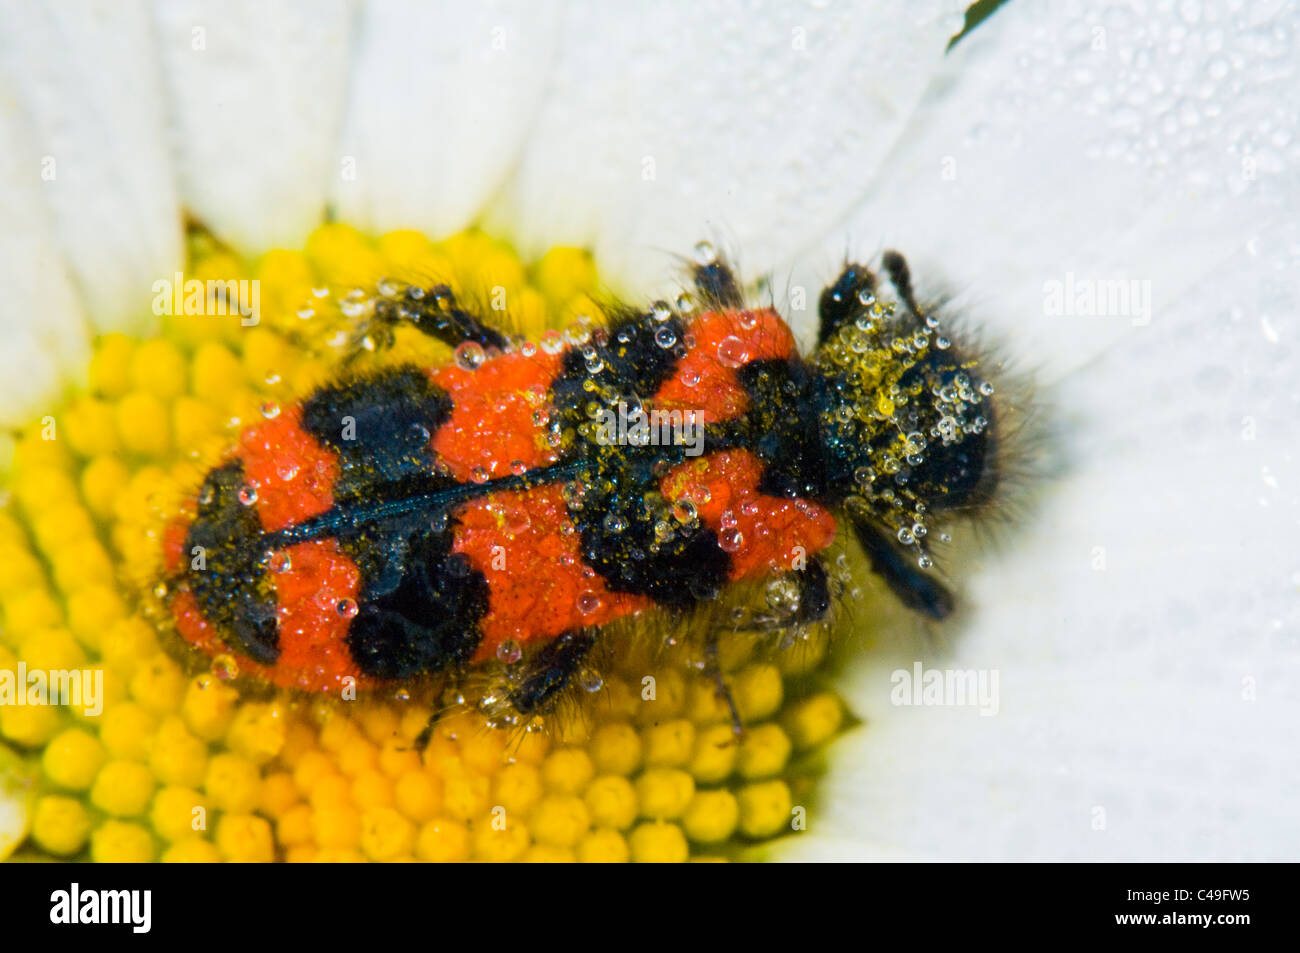 Chequered Bee Beetle (Trichodes apiarius), France - Stock Image